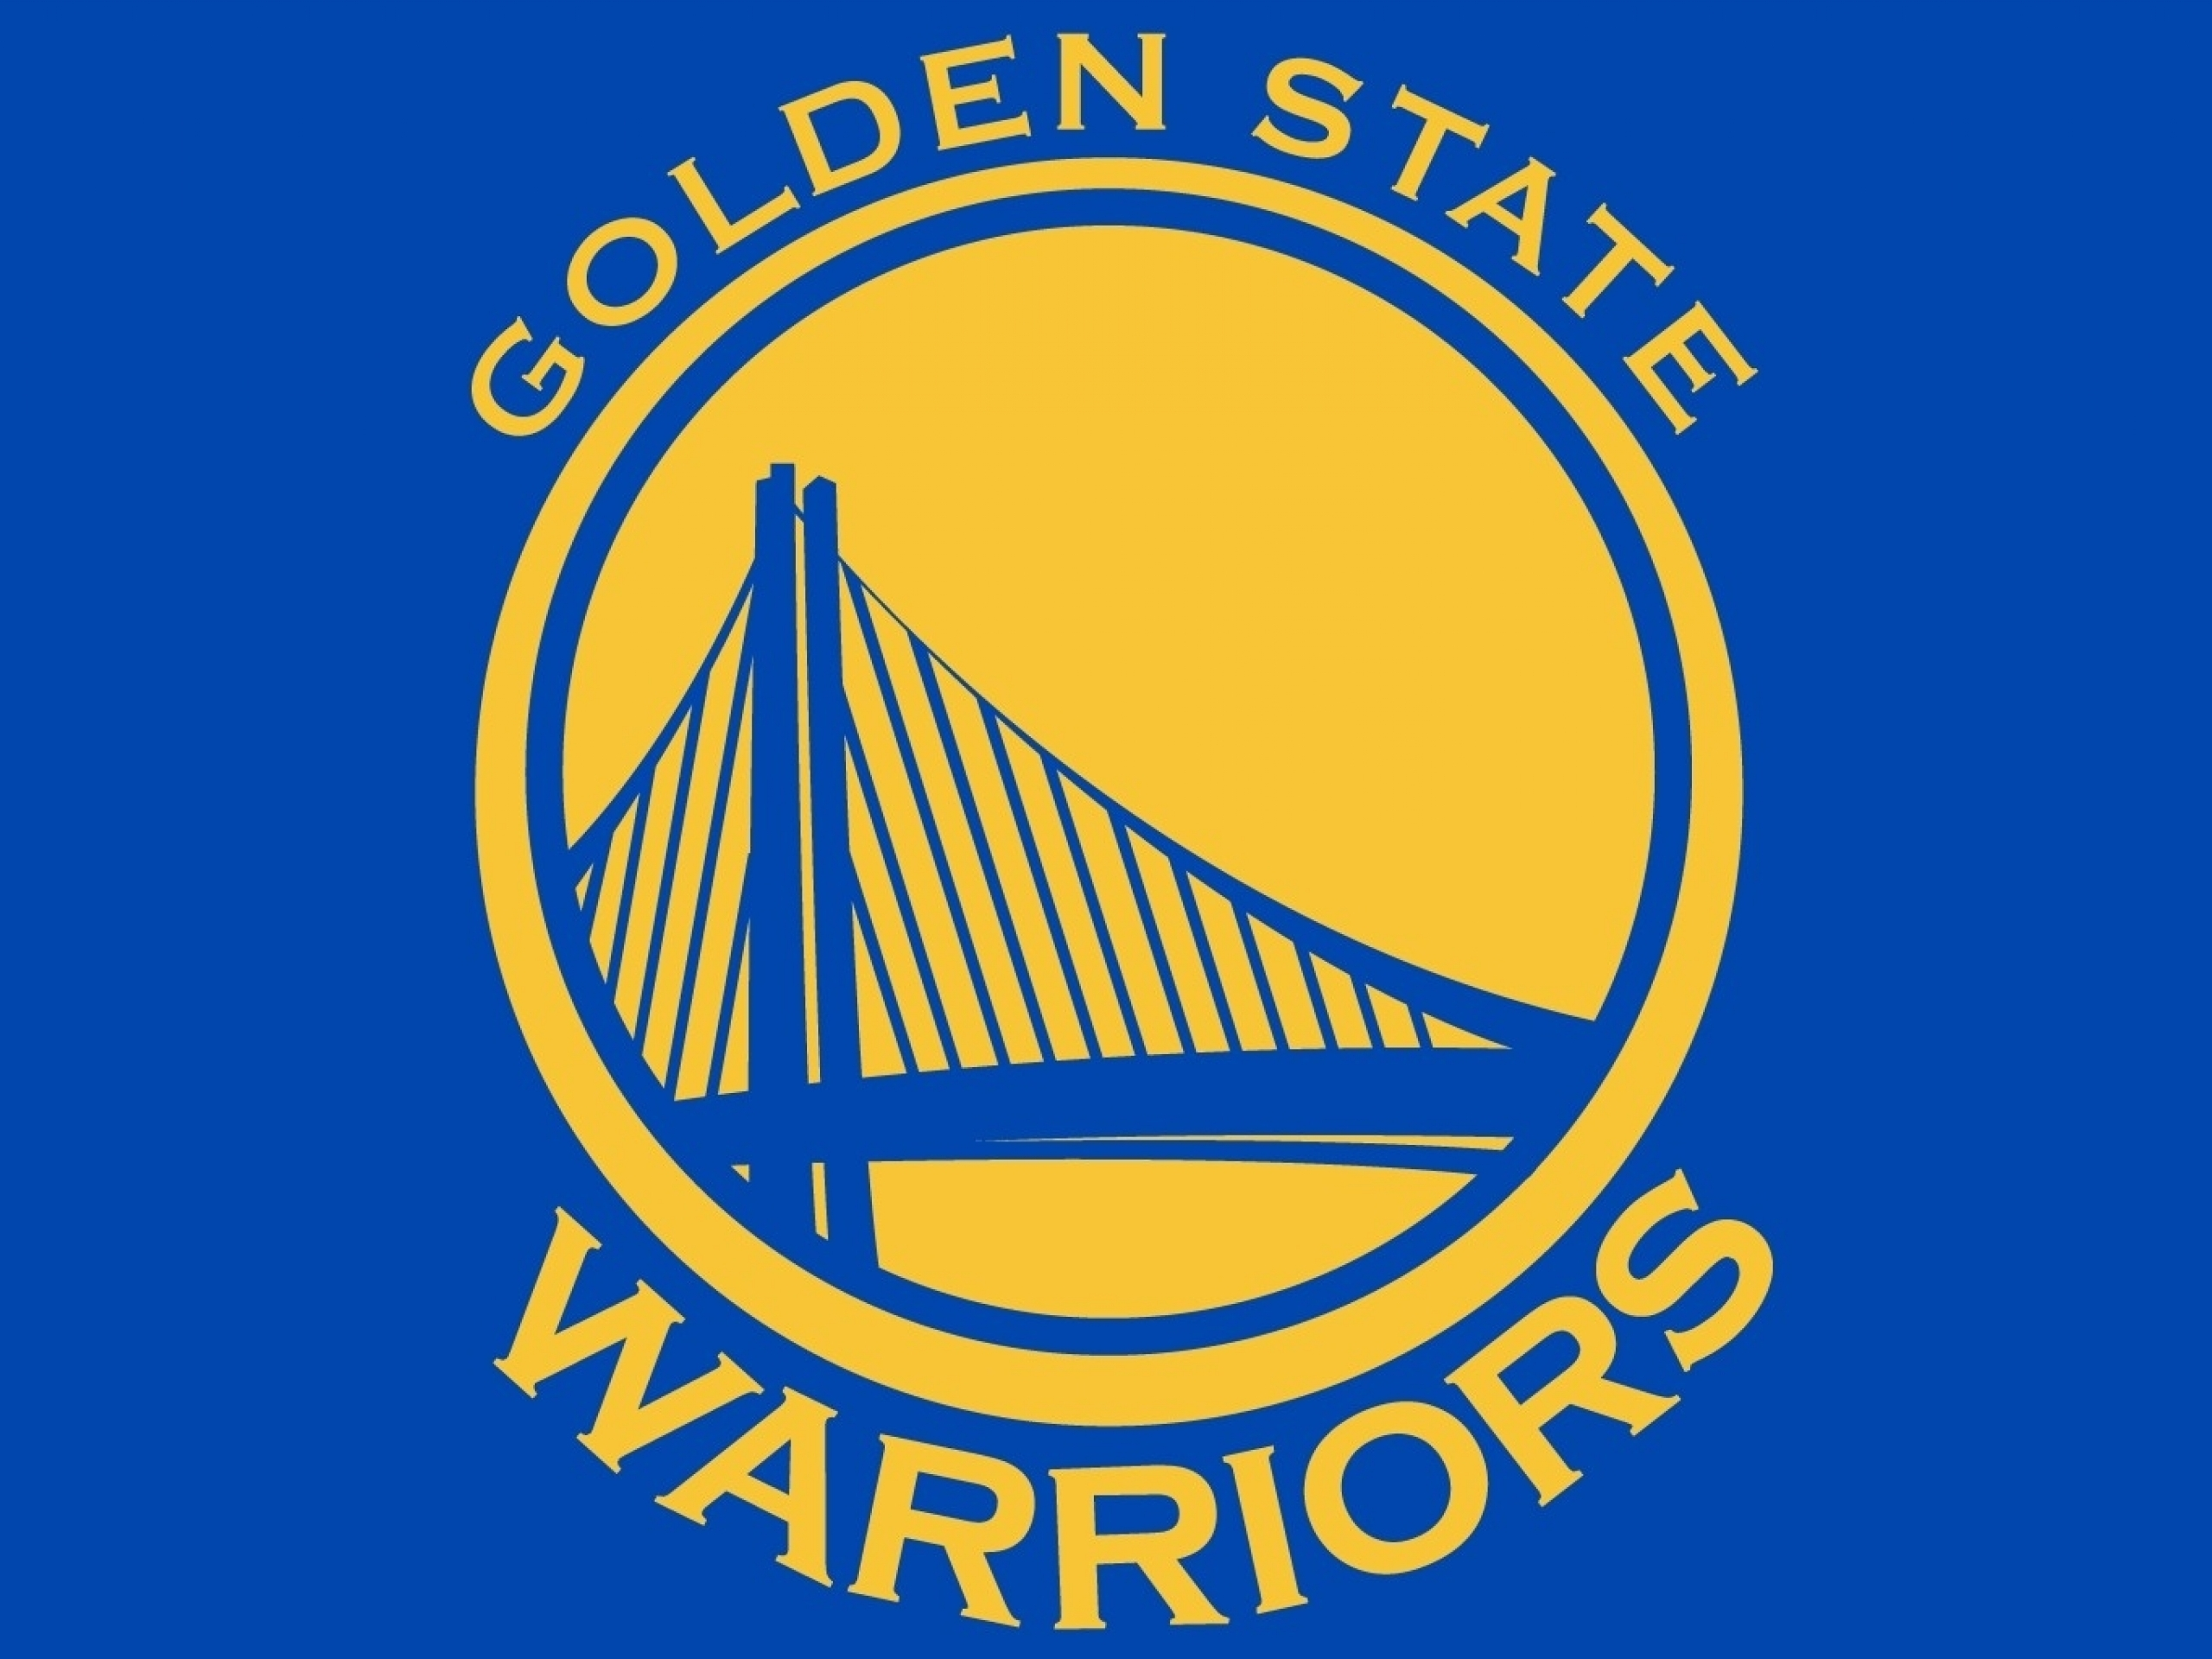 golden state warriors wallpaper 2014 hd wallpaper, background images